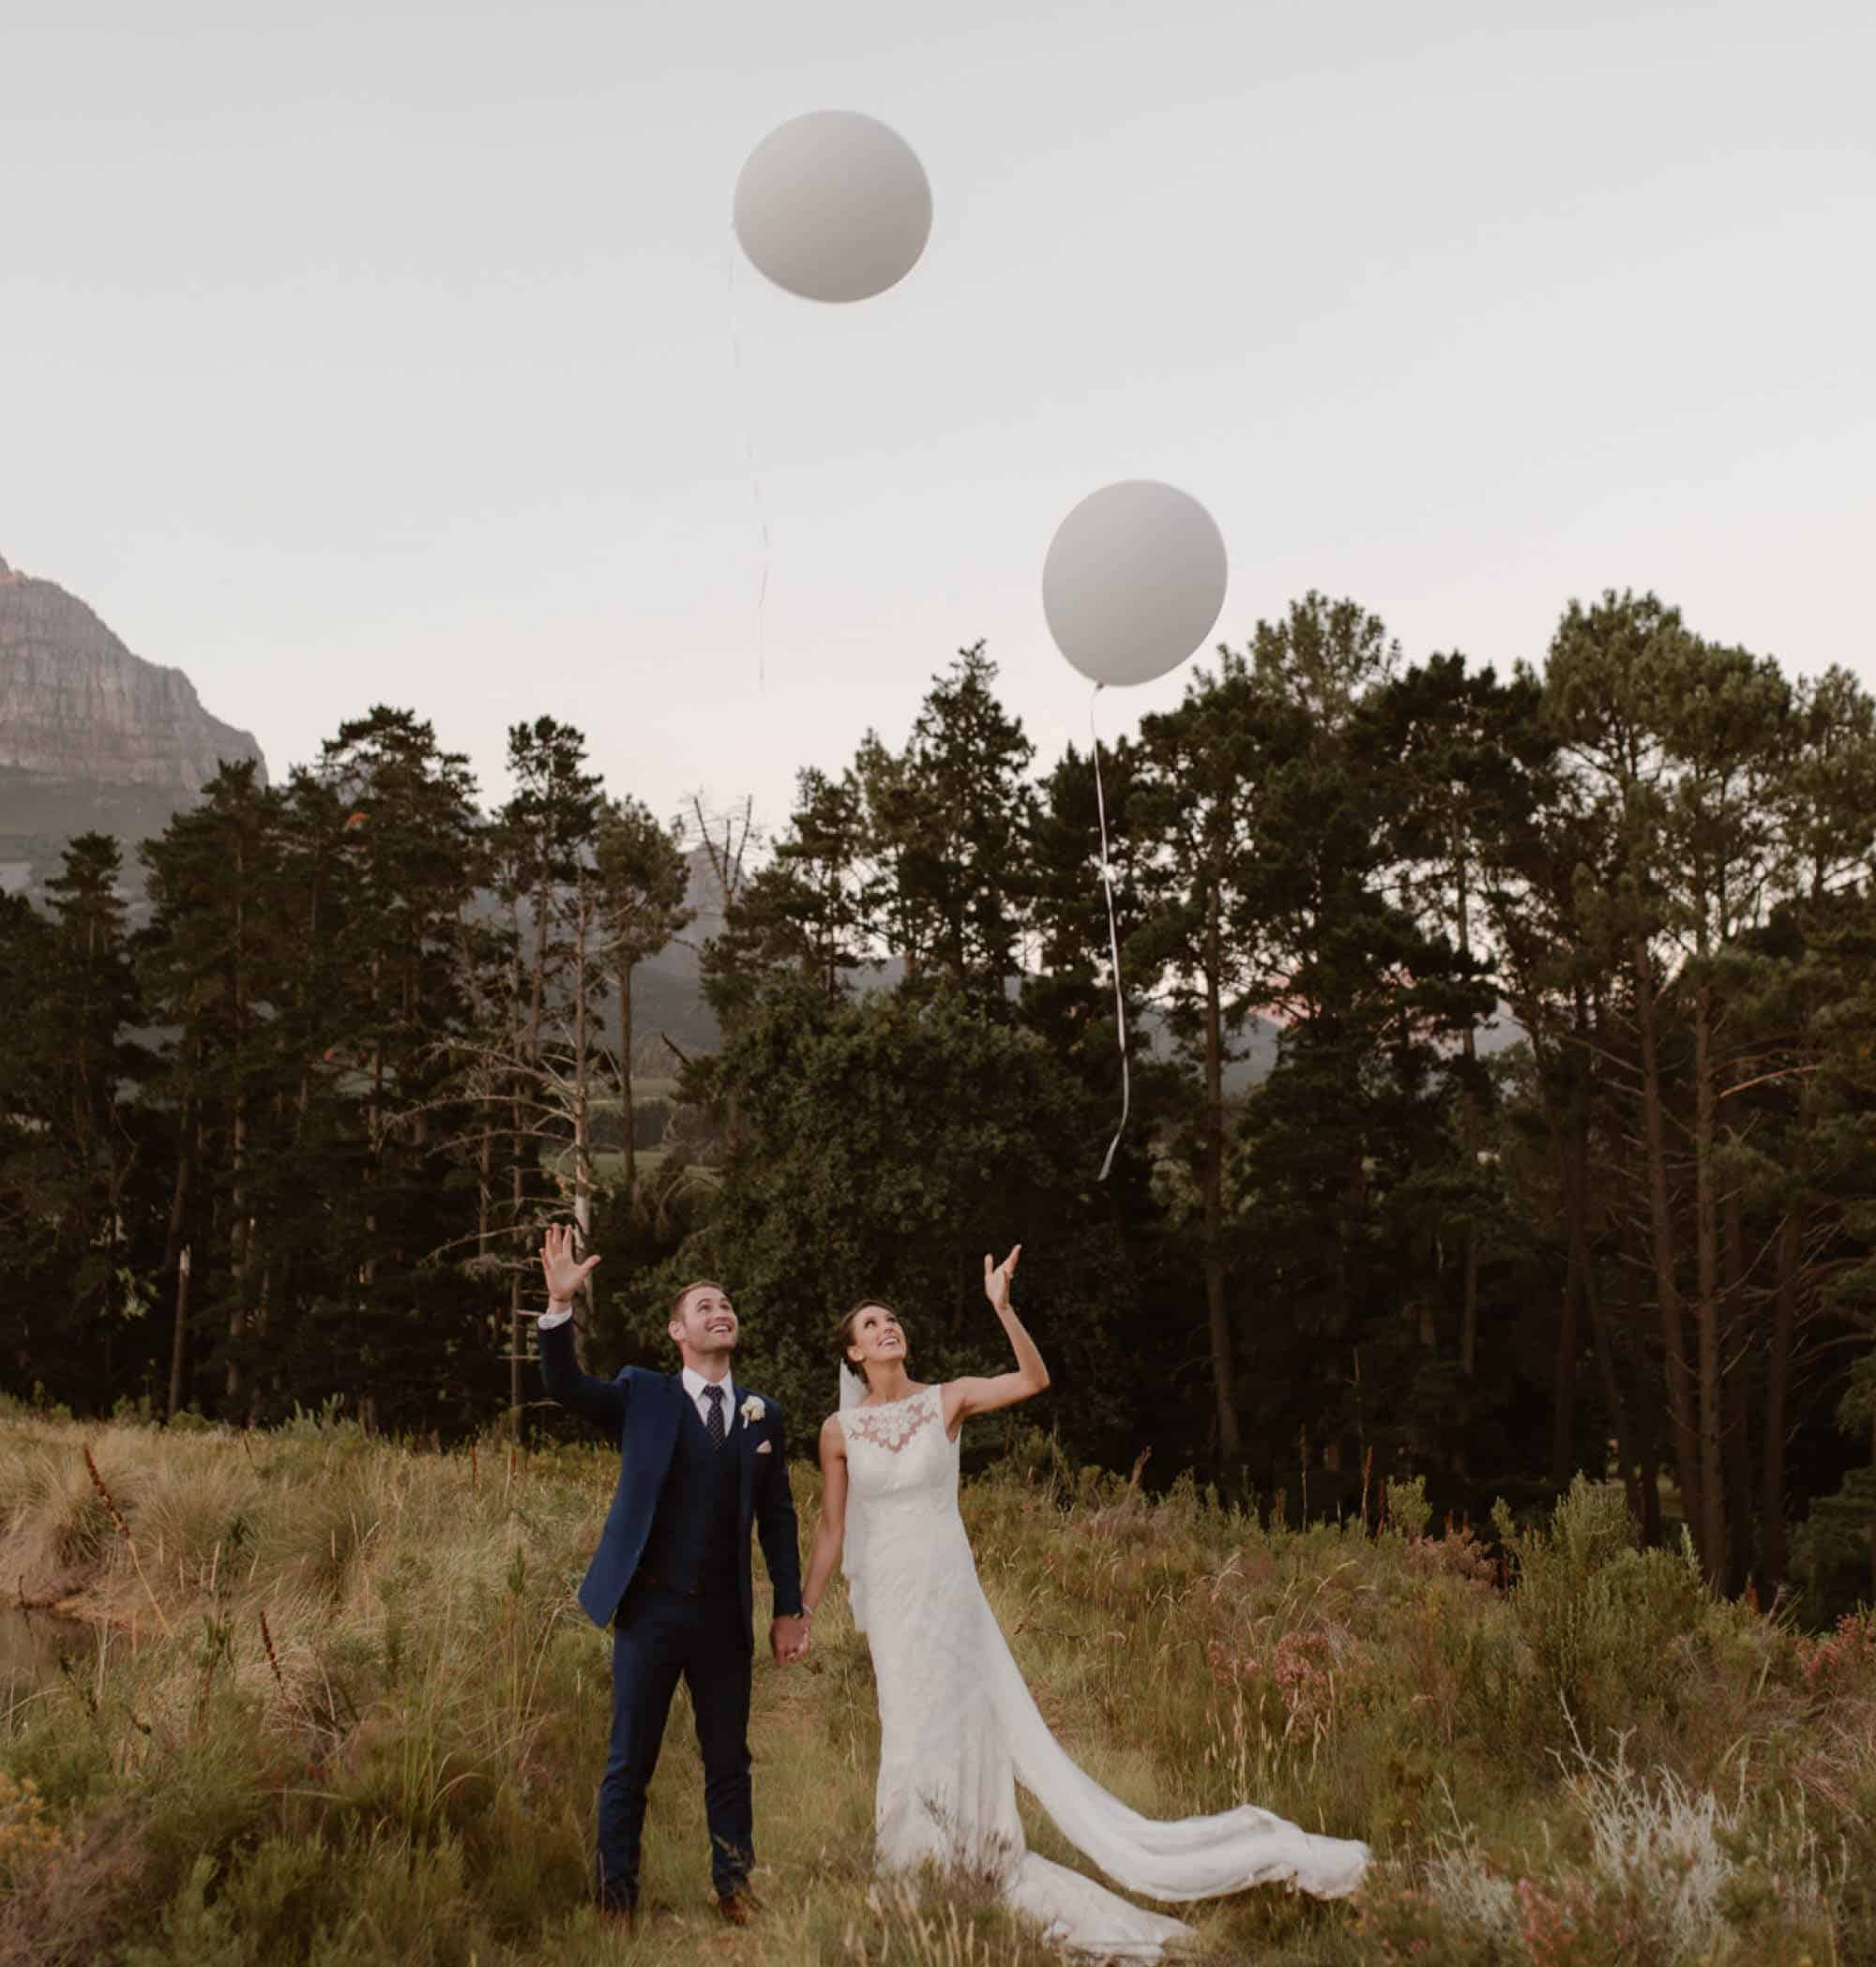 Meagan Oosthuizen Event Styling | Wedding Planner Cape Town